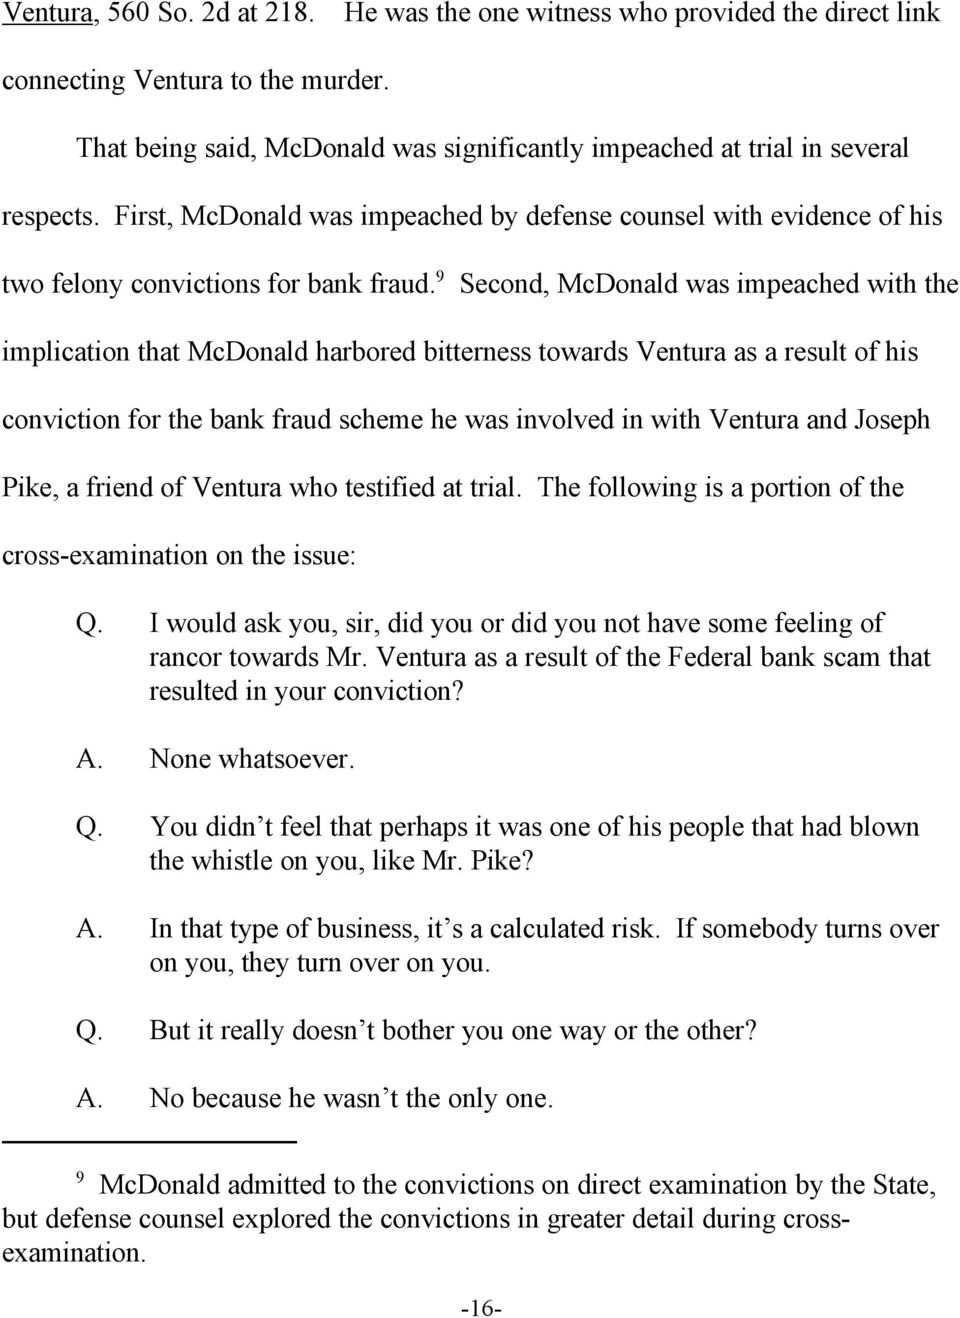 9 Second, McDonald was impeached with the implication that McDonald harbored bitterness towards Ventura as a result of his conviction for the bank fraud scheme he was involved in with Ventura and